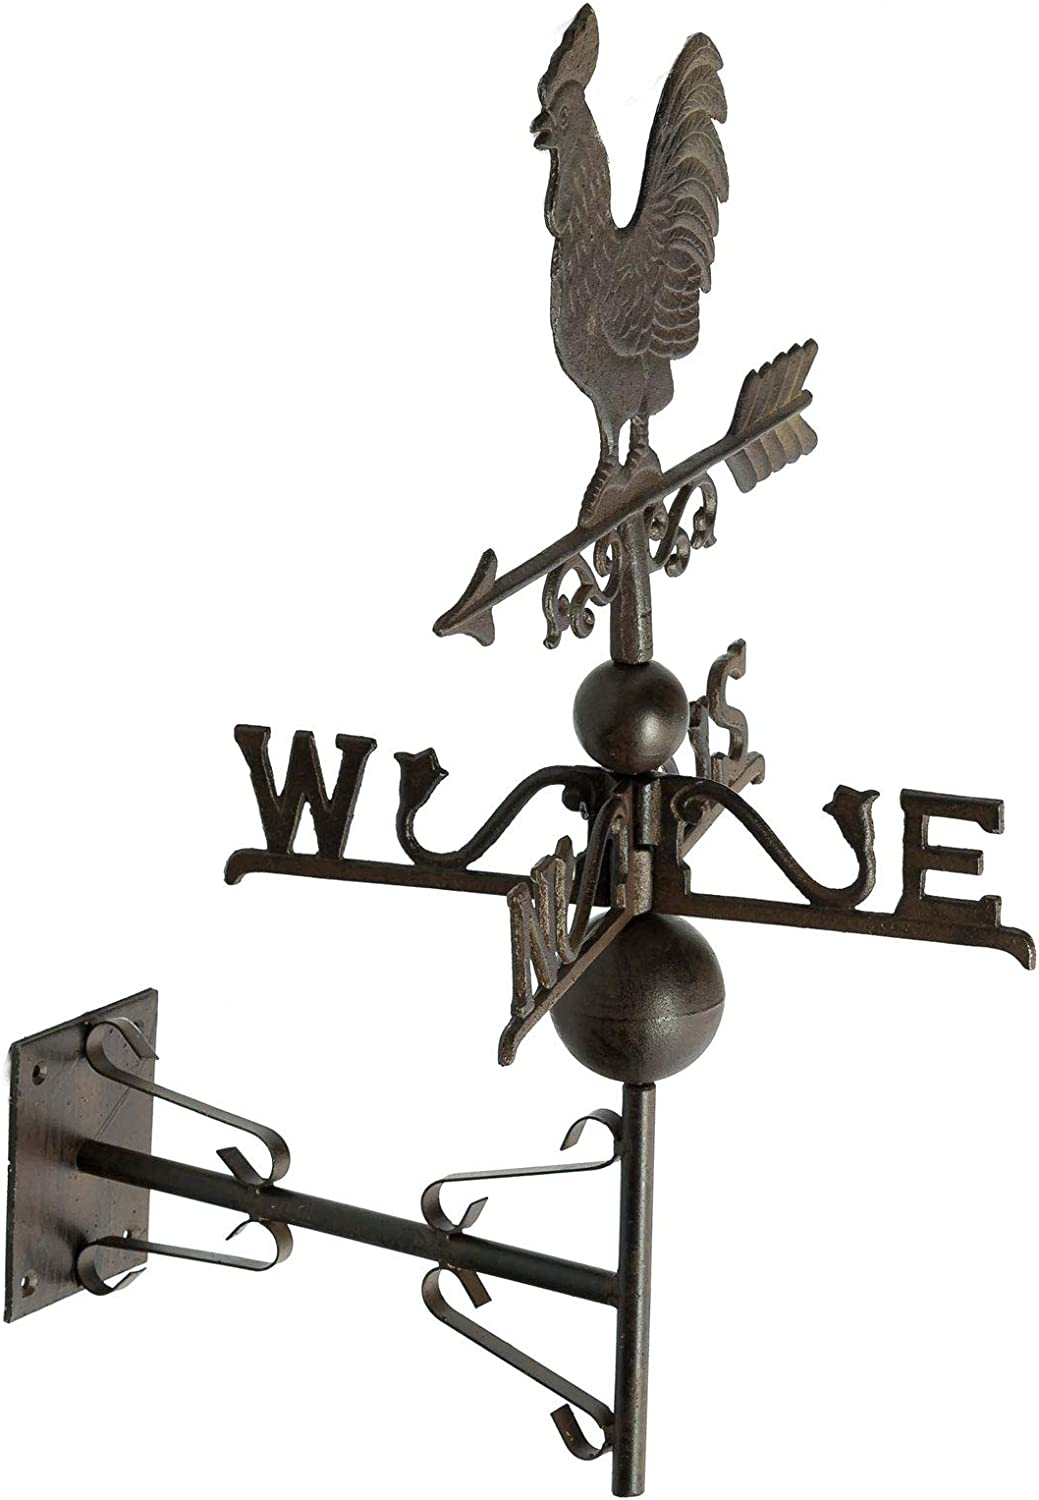 aubaho Nostalgia wall weathercock decoration garden pinwheel iron brown